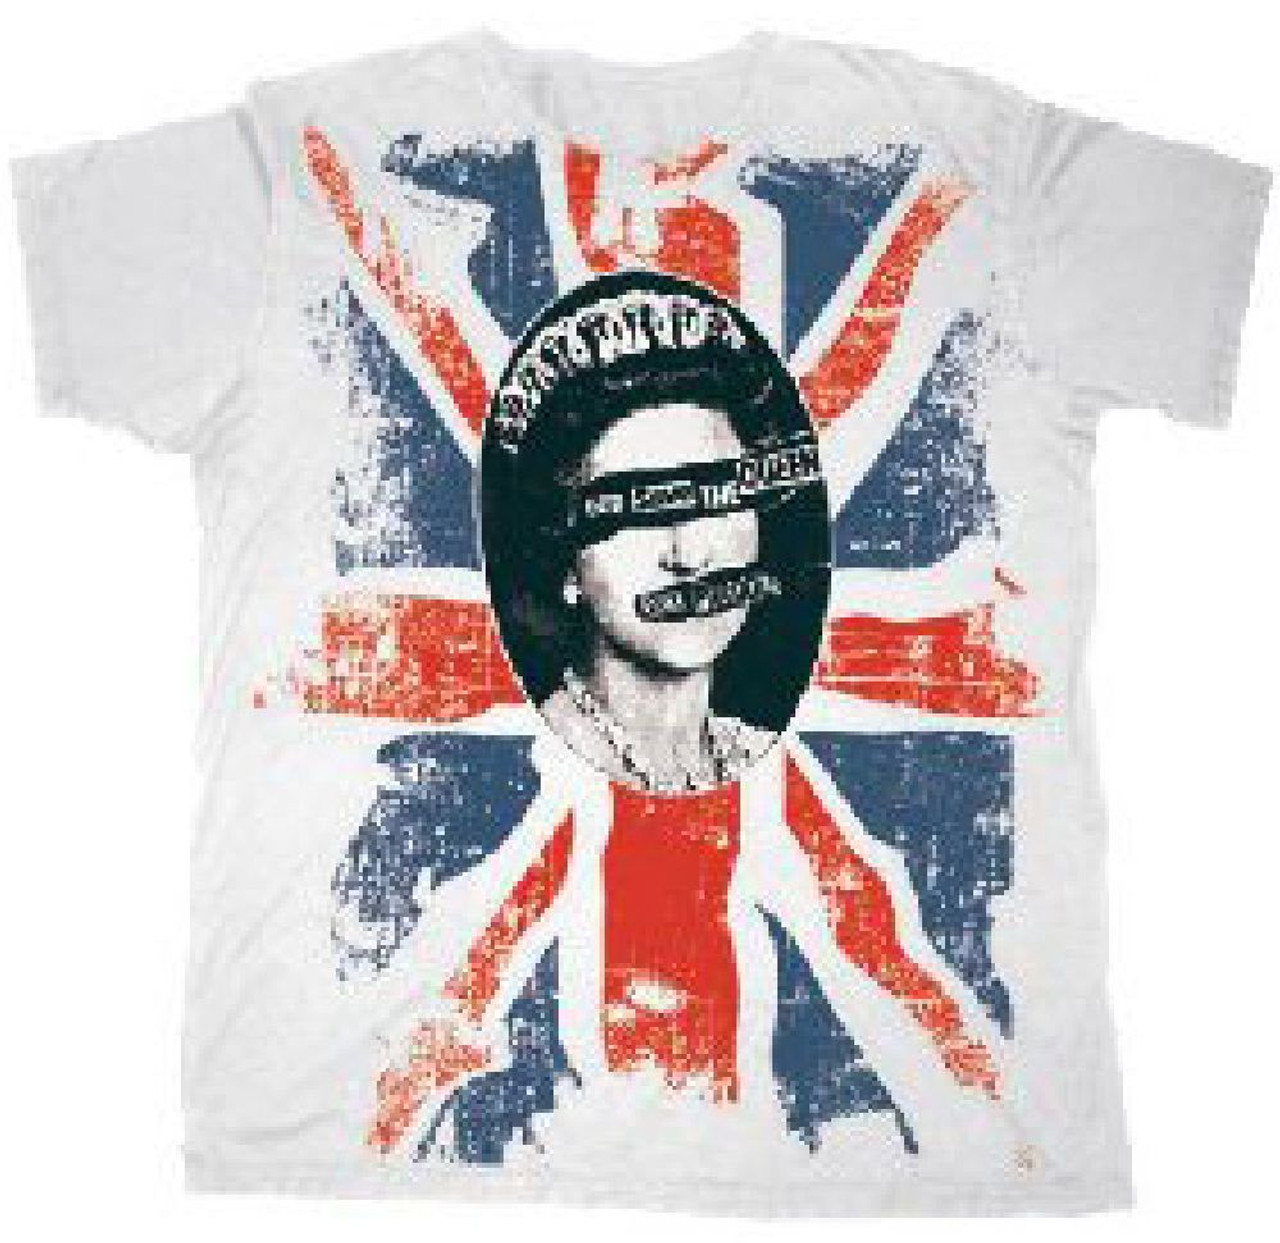 Top sex pistols official flag god save the queen shirt, hoodie, sweater, longsleeve